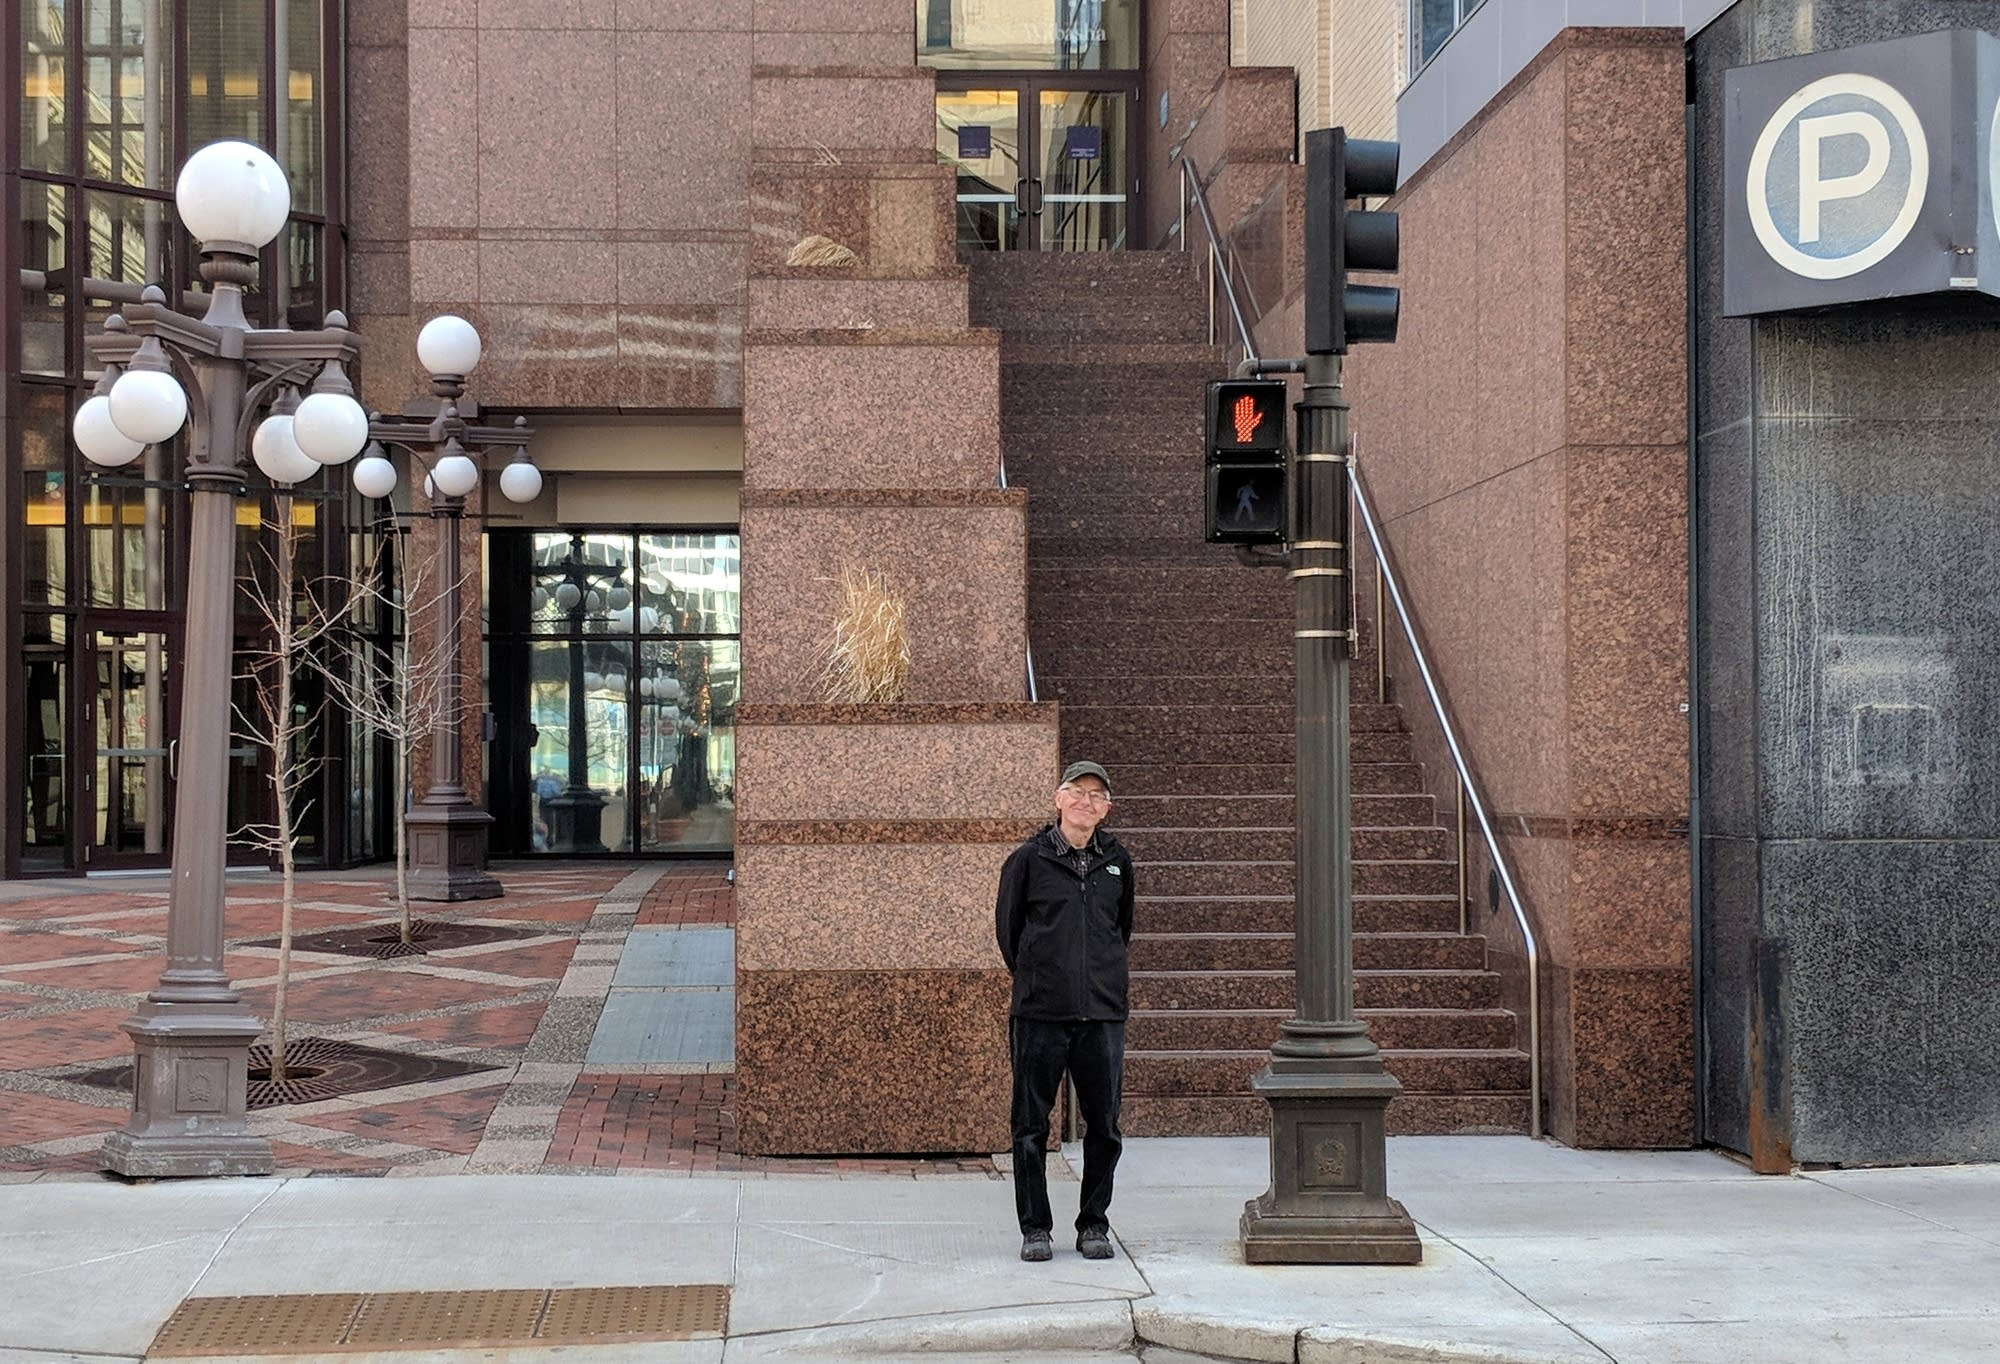 Mathiason stands at the intersection of Wabasha Street and old 7th Street.